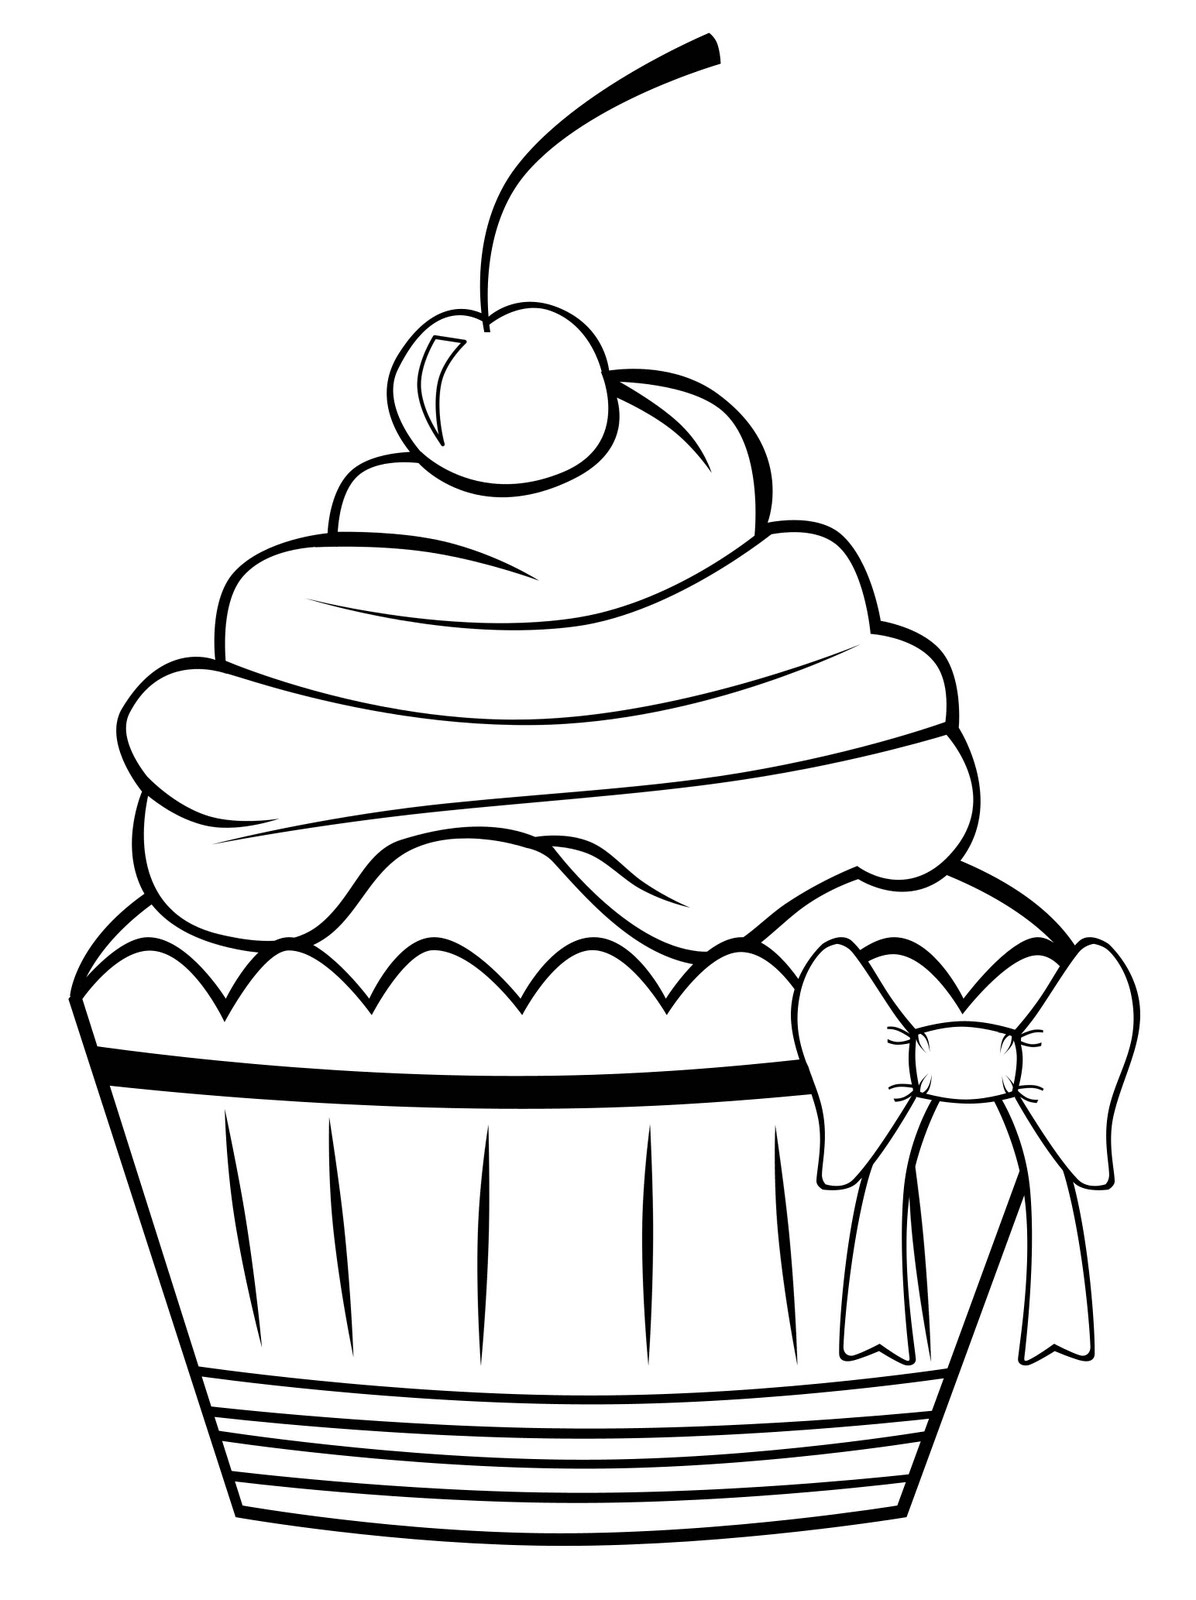 Coloring Pages For Kids Printable : Cupcakes coloring pages free printable pictures